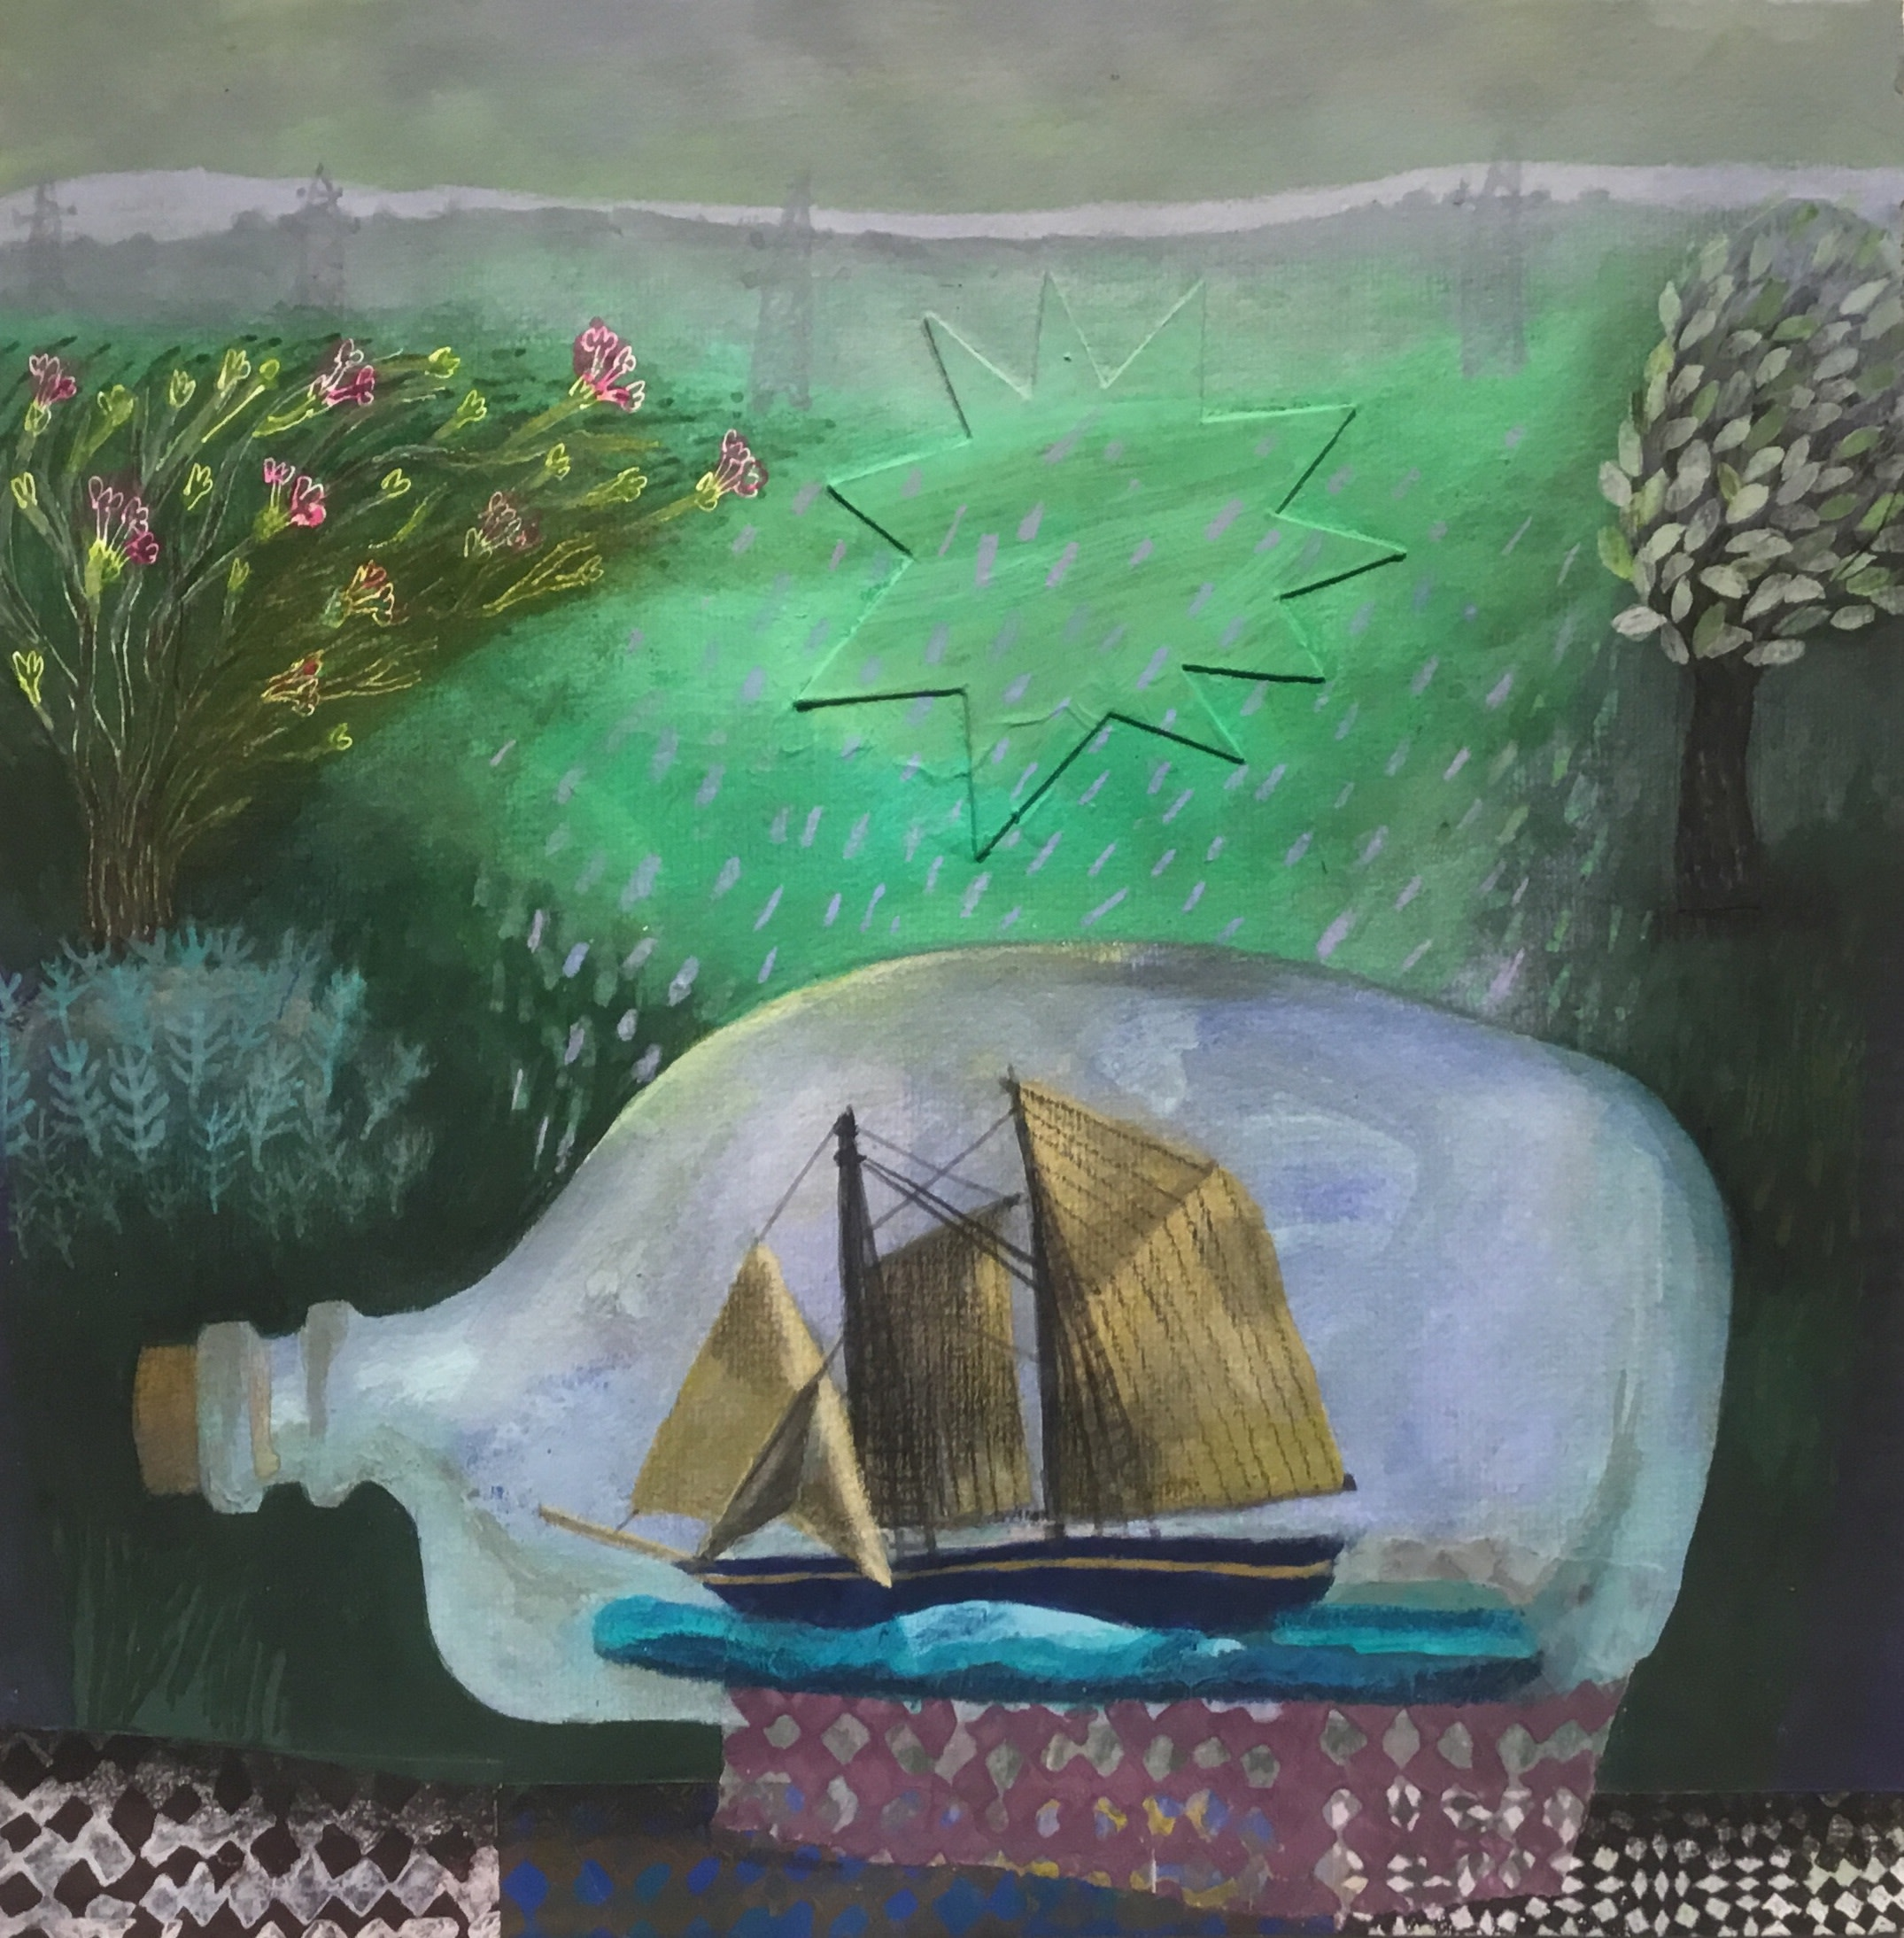 """<span class=""""link fancybox-details-link""""><a href=""""/artists/146-gertie-young/works/11874-gertie-young-voyage-to-the-surrey-hills/"""">View Detail Page</a></span><div class=""""artist""""><span class=""""artist""""><strong>Gertie Young</strong></span></div><div class=""""title""""><em>Voyage to the Surrey Hills</em></div><div class=""""medium"""">watercolour & gouache collage</div><div class=""""dimensions"""">Frame: 31 x 31 cm<br /> Artwork: 20 x 20 cm<br /> </div><div class=""""price"""">£320.00</div>"""